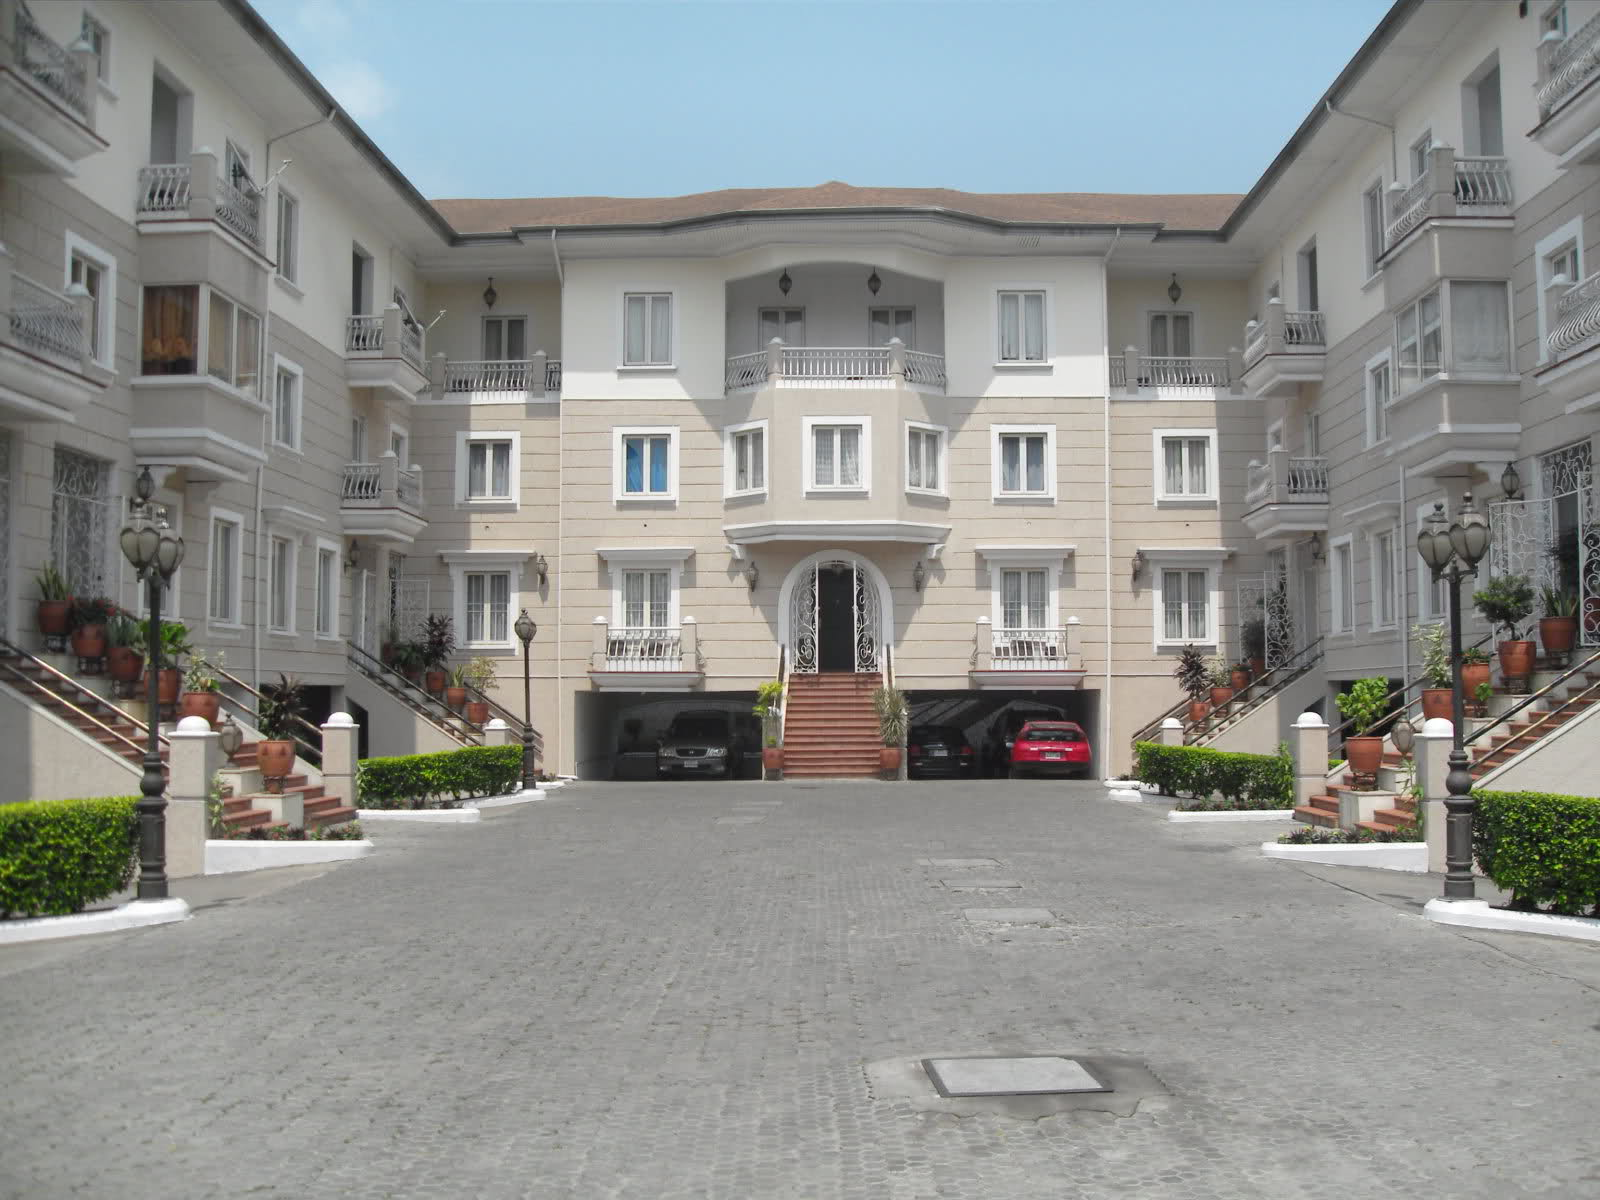 Lekki lagos mansions joy studio design gallery best design for Mansions in nigeria for sale